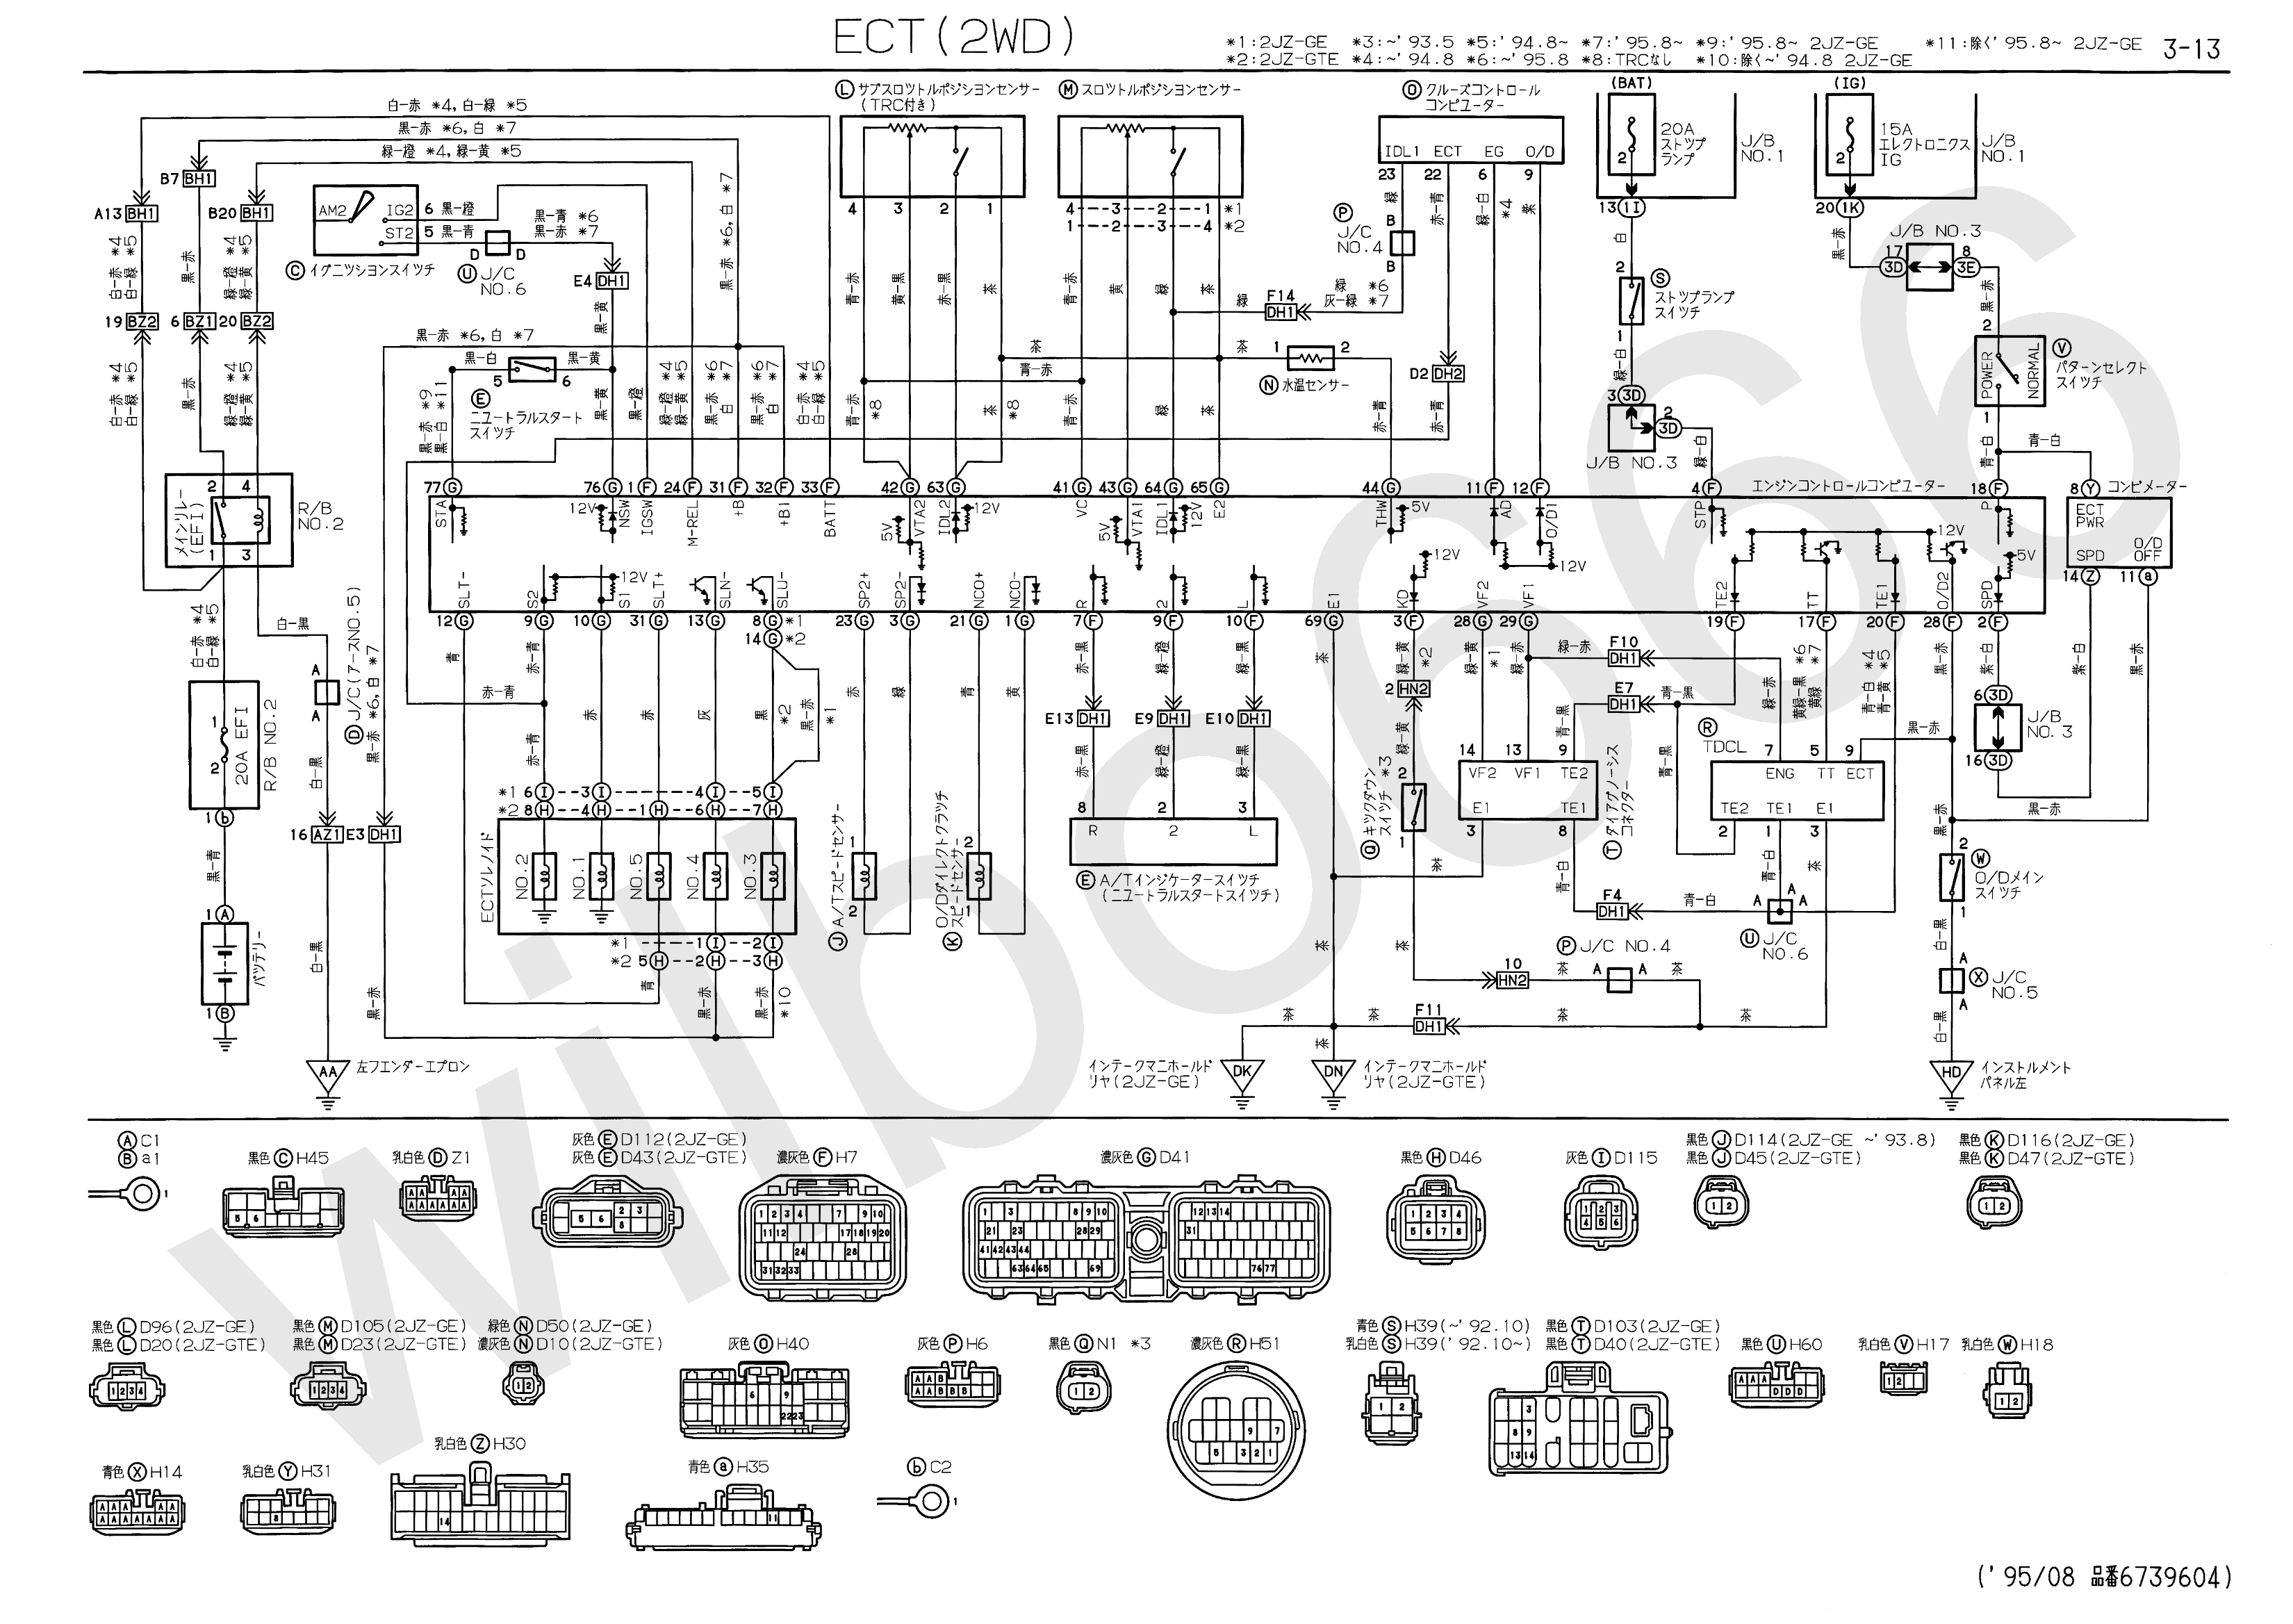 lexus is300 radio wiring diagram lexus image 1995 lexus sc400 radio wiring diagram 1995 discover your wiring on lexus is300 radio wiring diagram